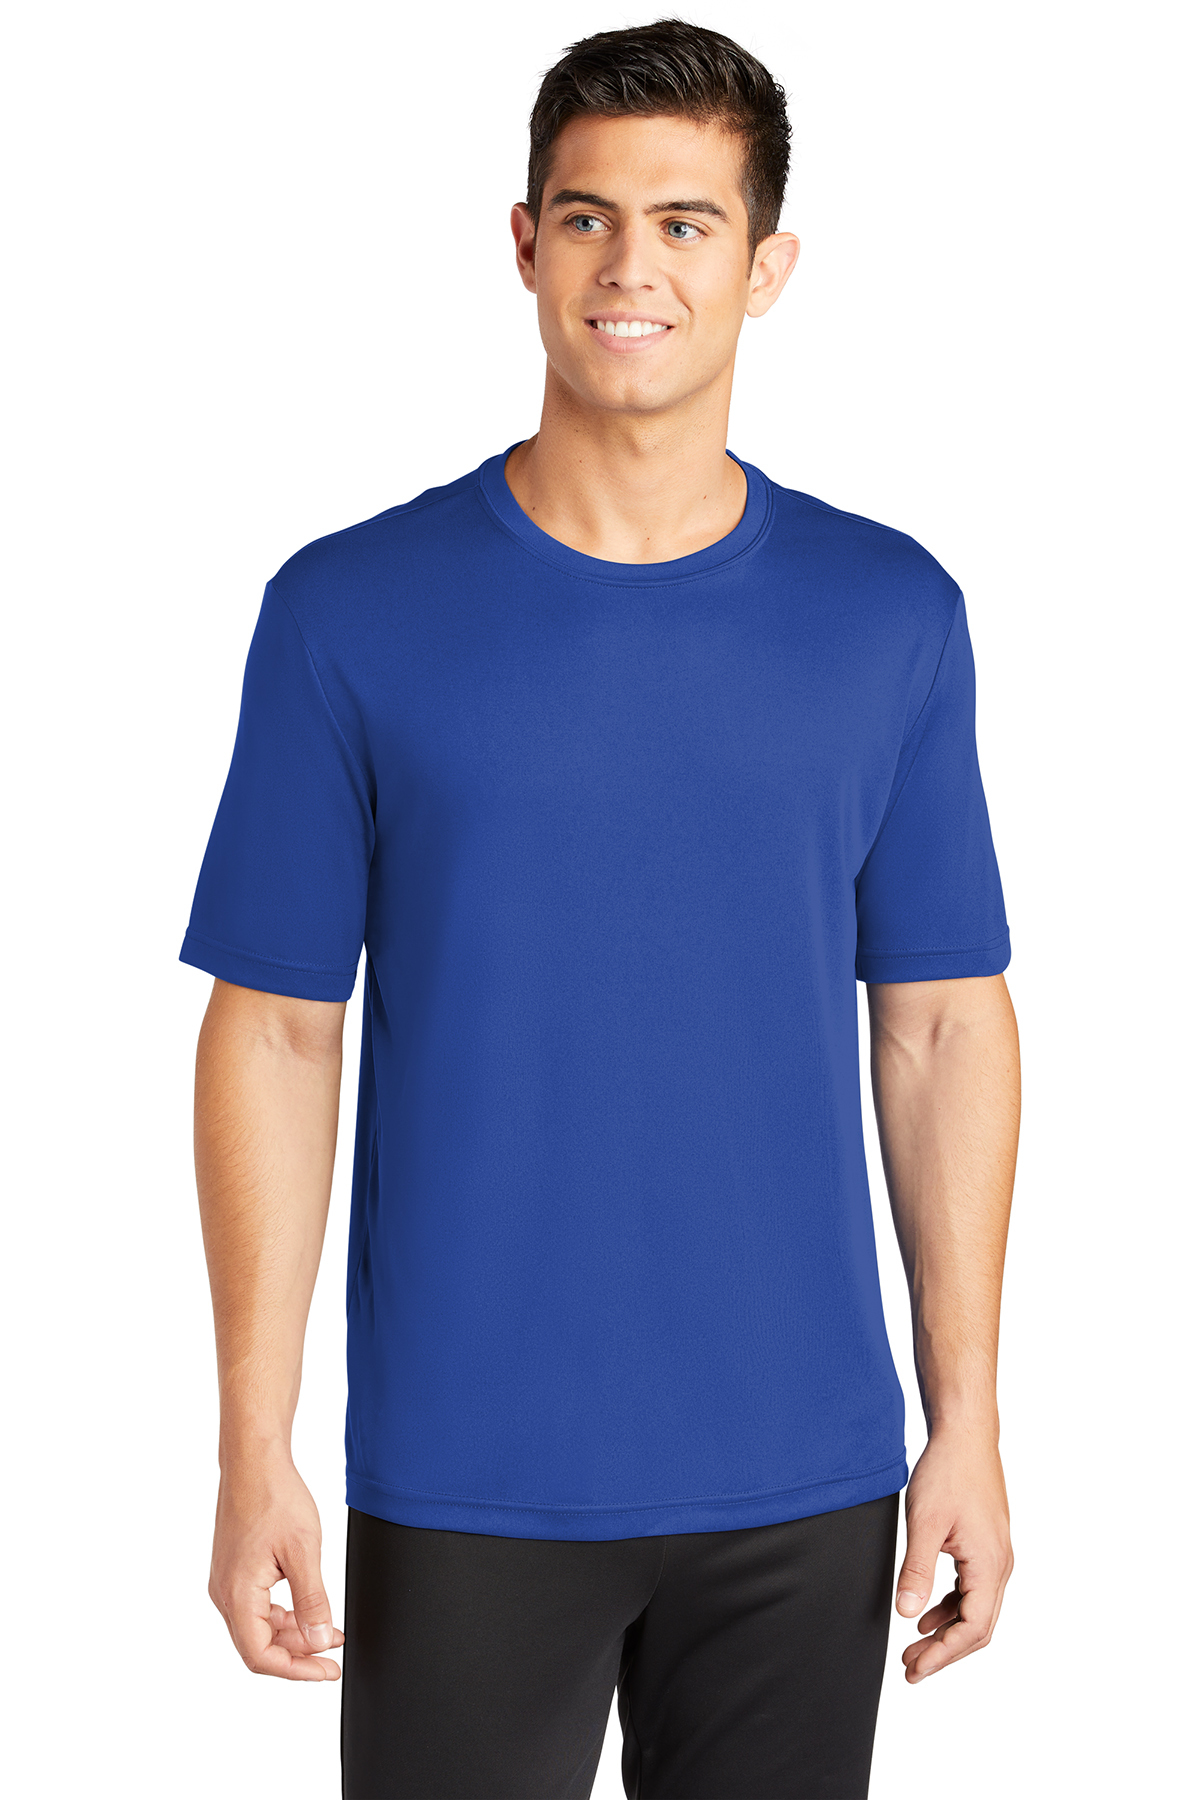 Sport Tek Posicharge Competitor Tee Performance T Shirts Sanmar Designed for the ultimate in performance, this polo has an understated vertical mesh texture. sport tek posicharge competitor tee performance t shirts sanmar